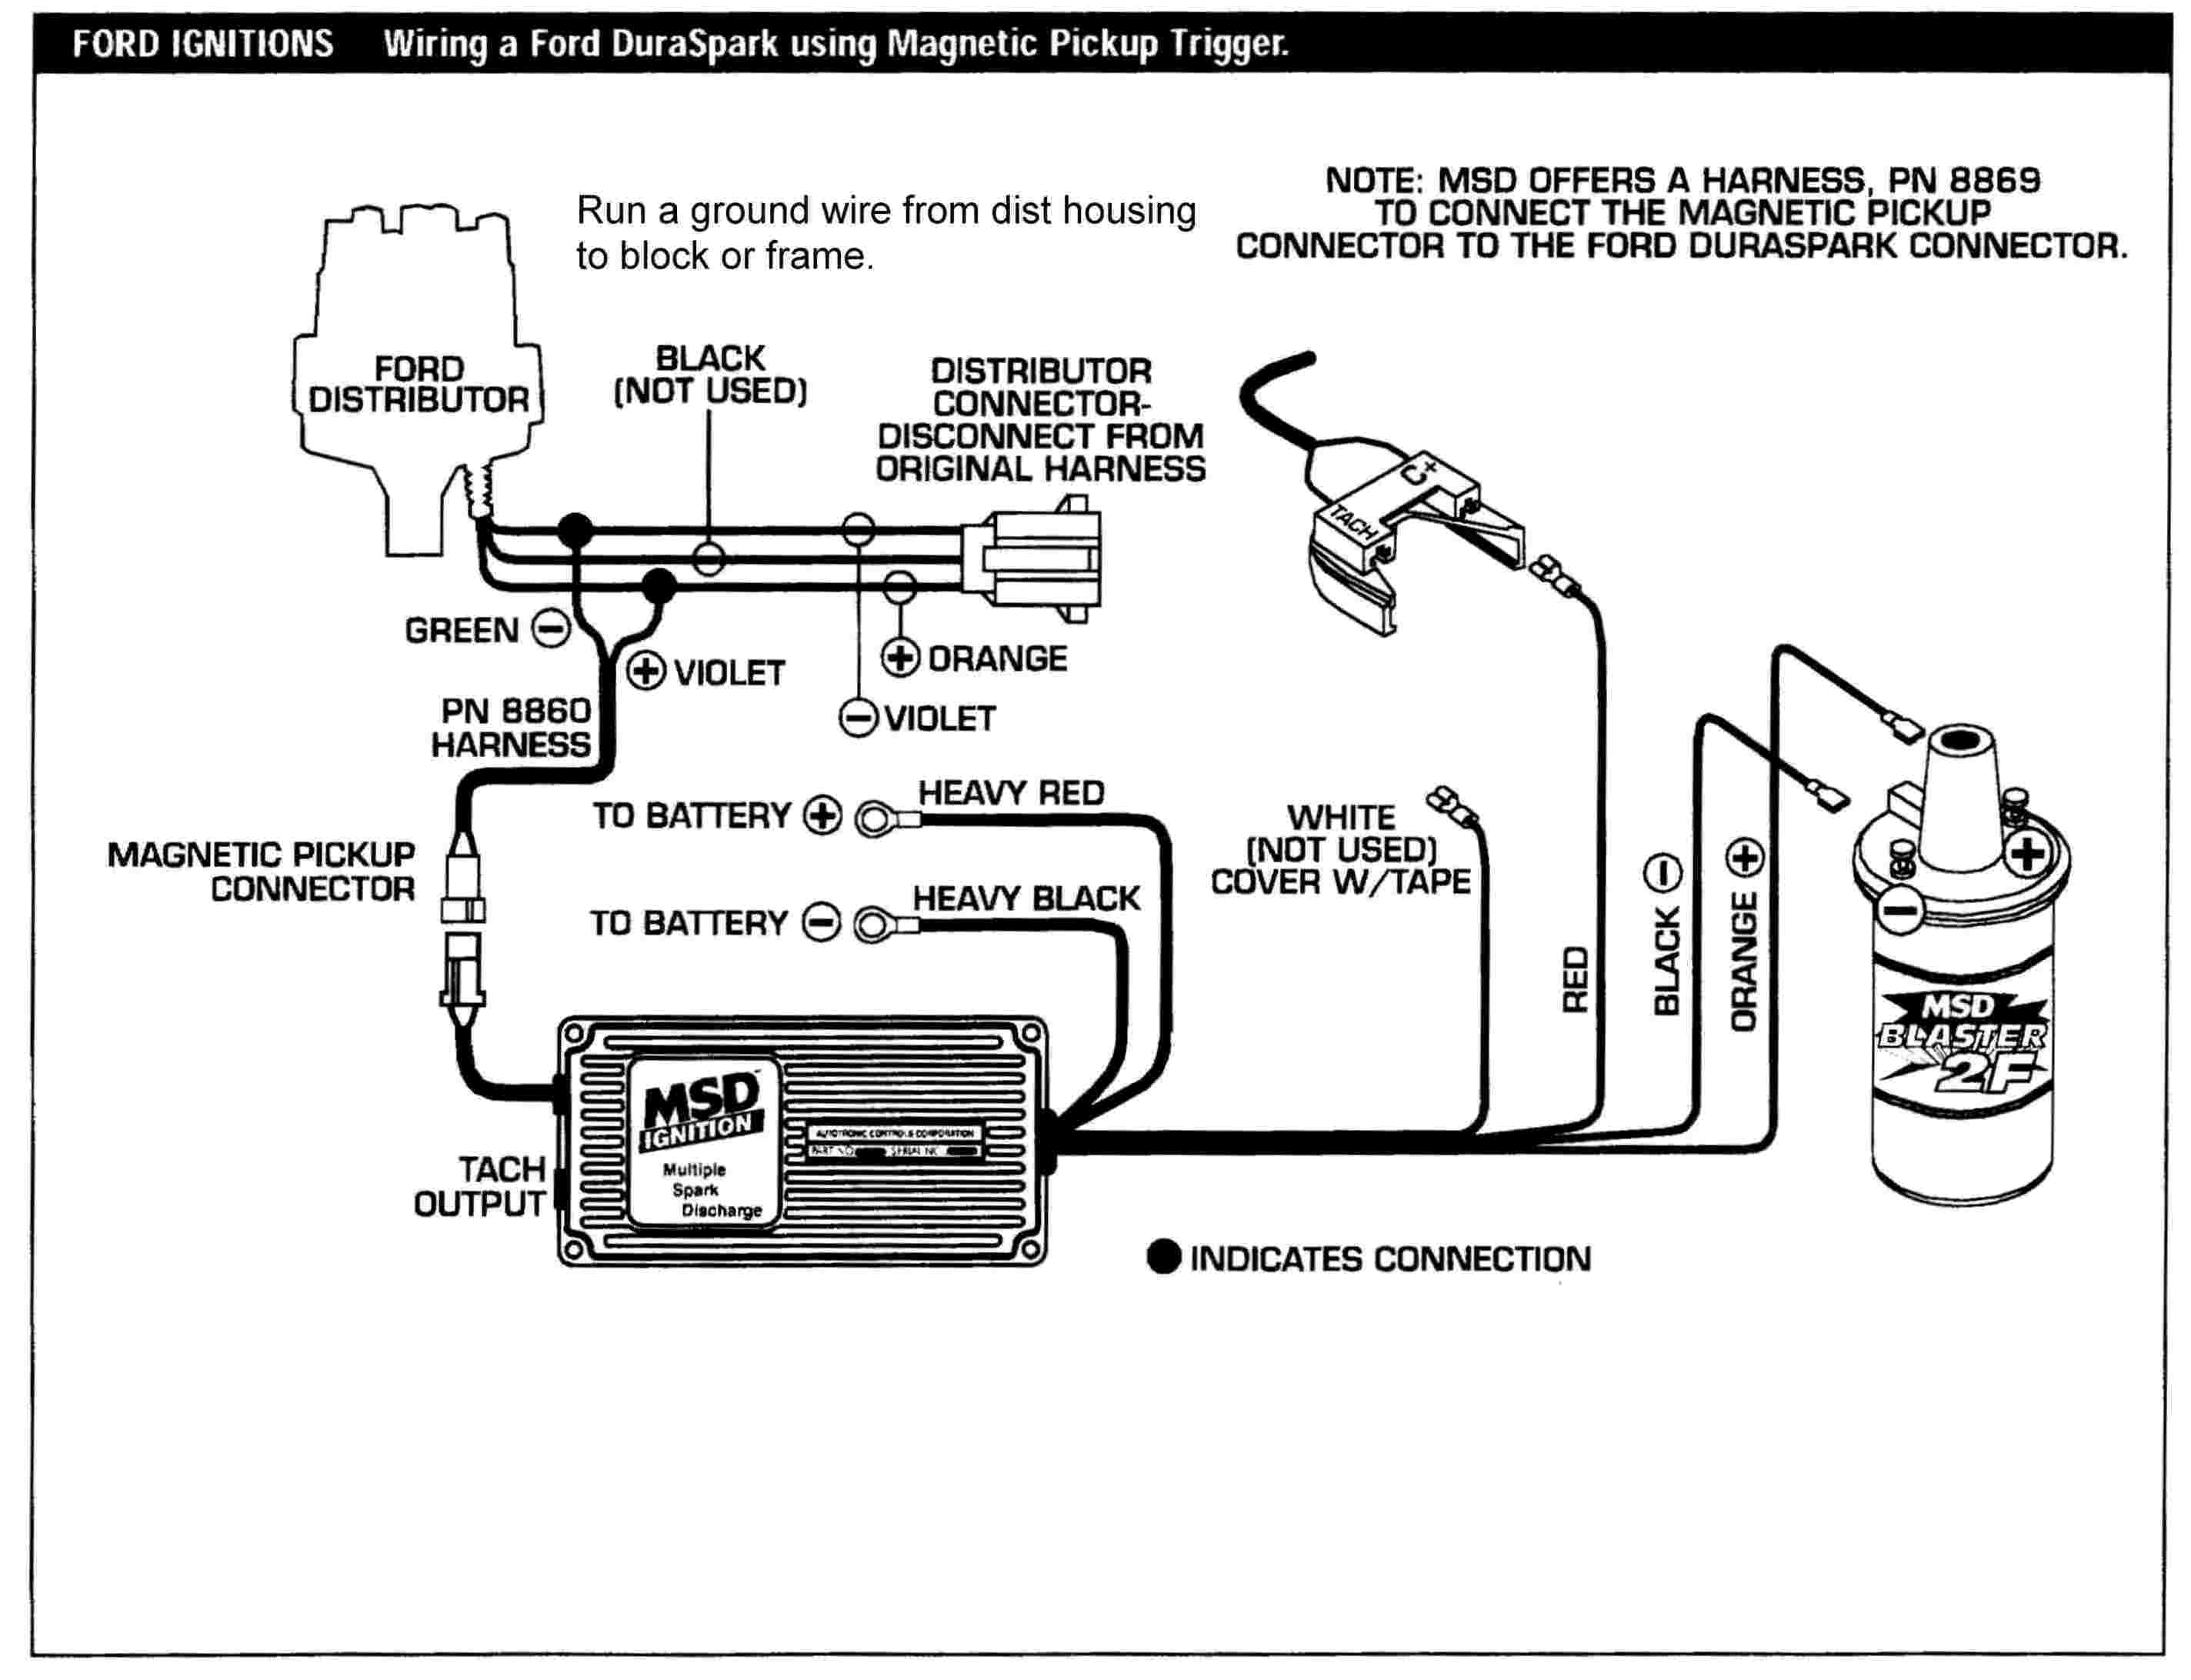 Ford Duraspark MSD schematic msd digital 6 plus wiring diagram msd digital 6 plus wiring msd mc4 wiring diagram at mifinder.co